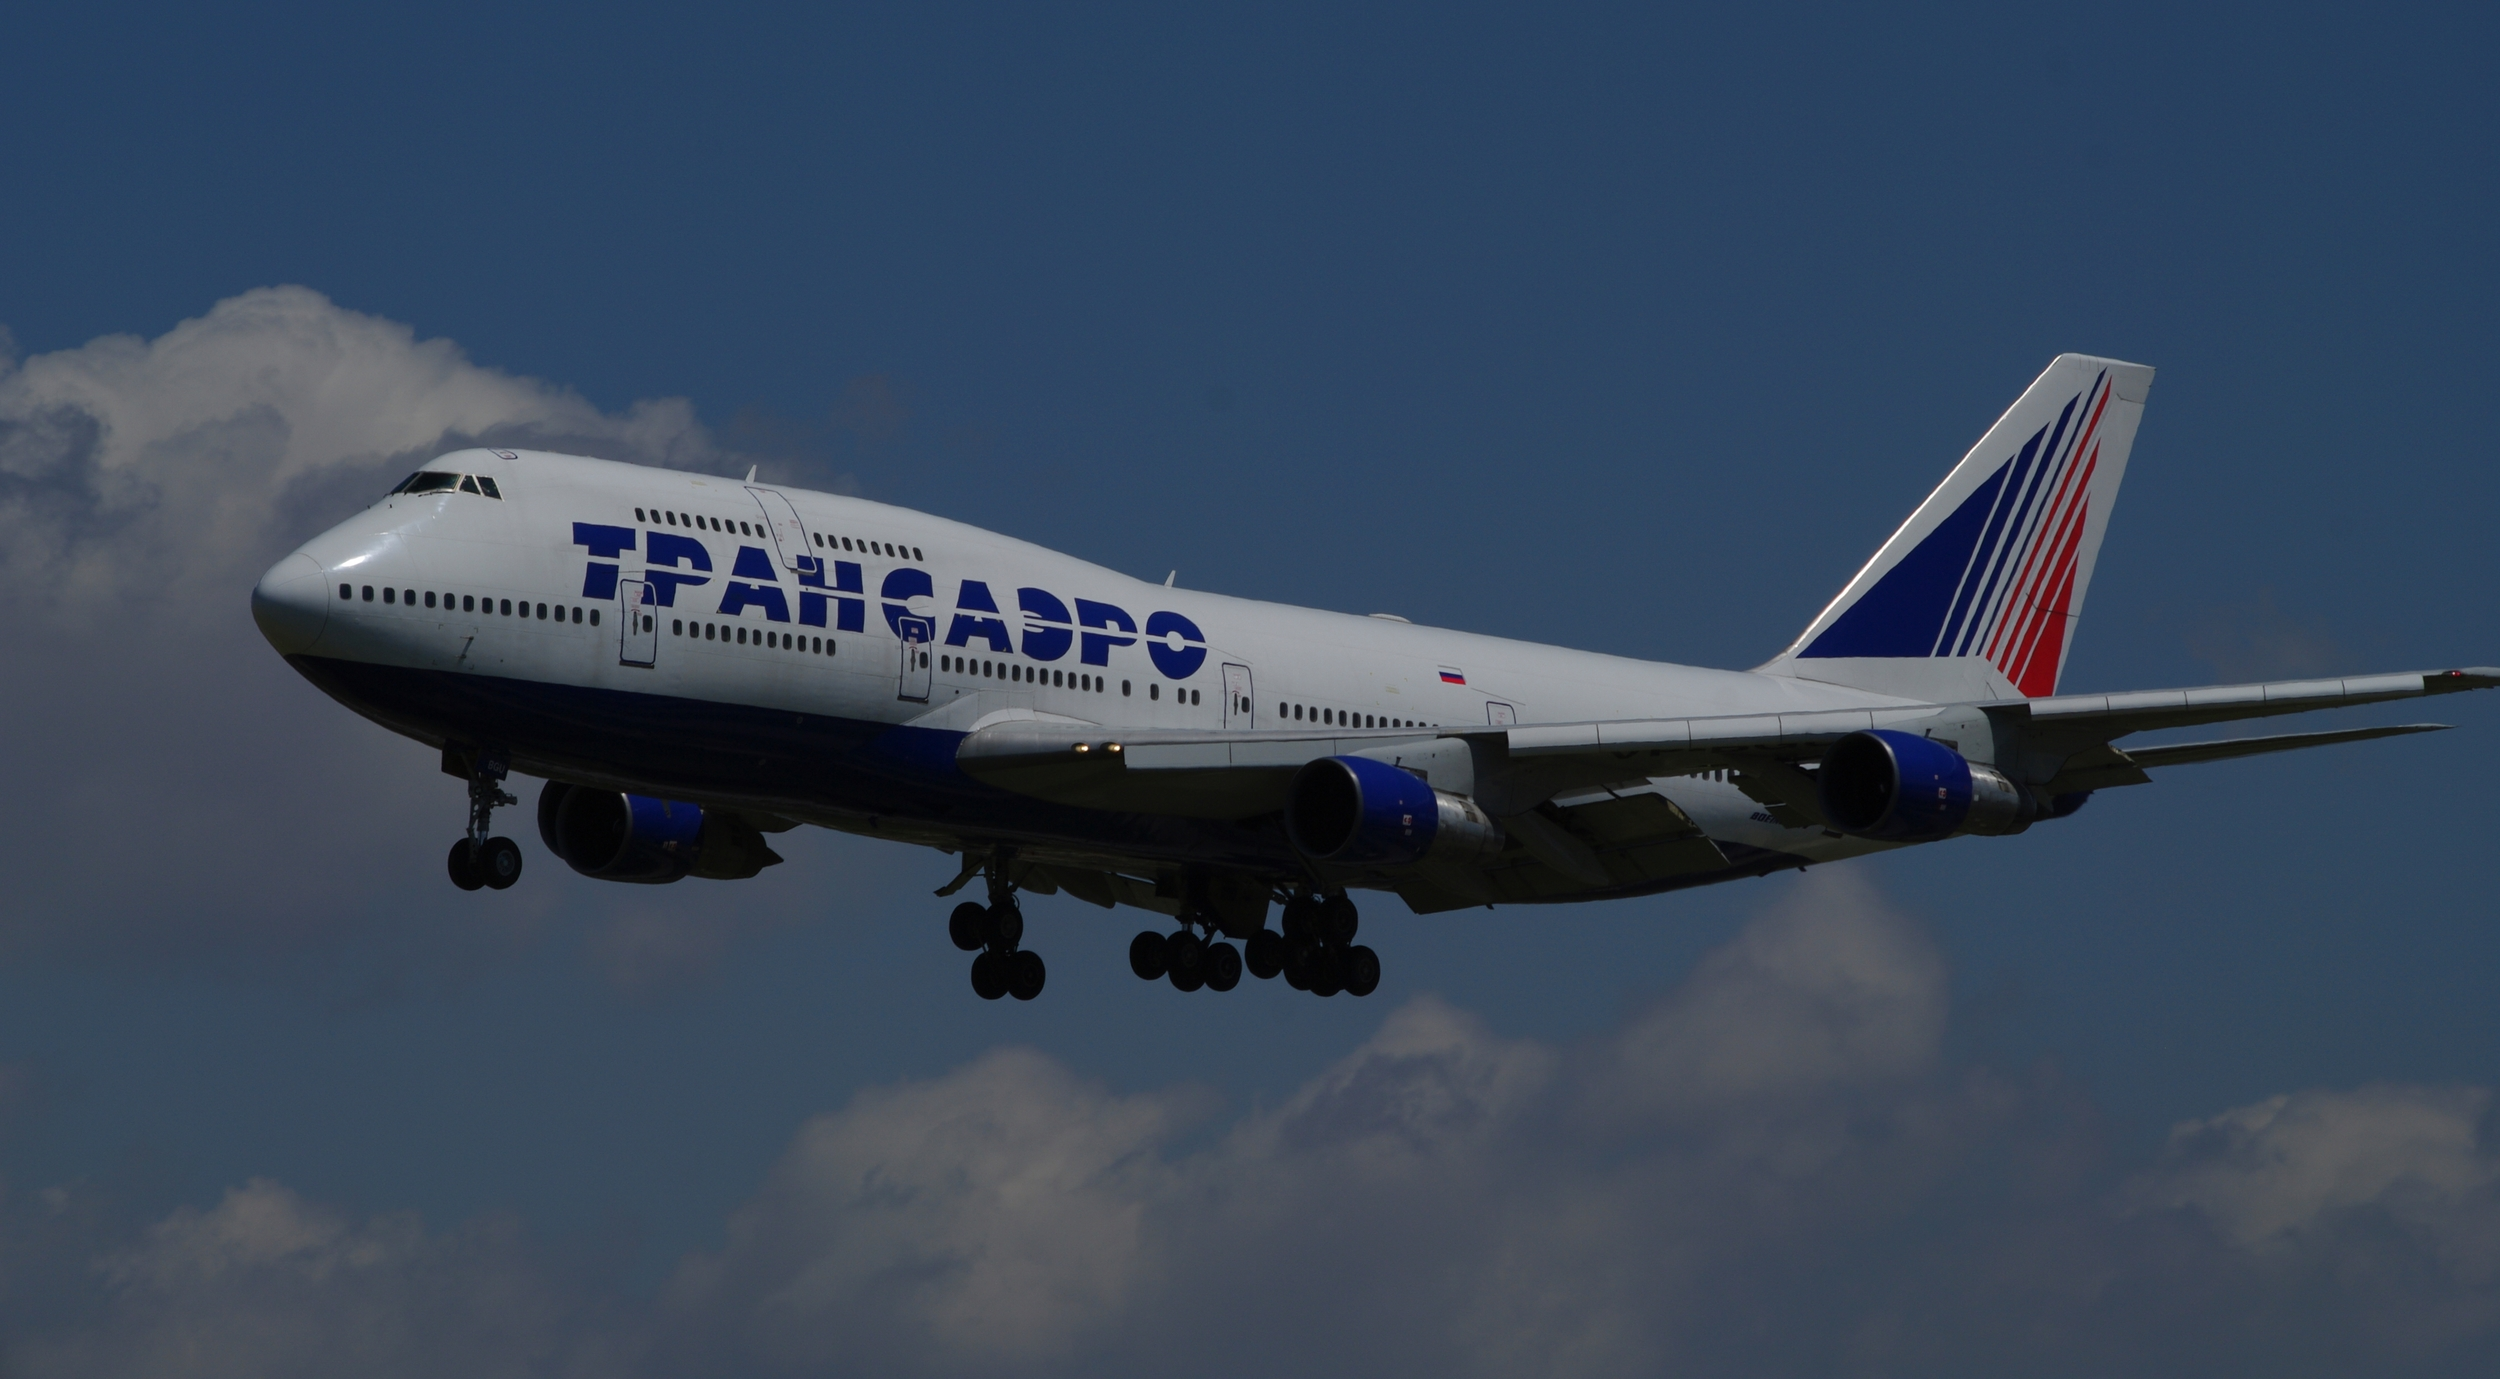 Tranasero currently operates 24 Boeing 747s but passengers flying from/to Moscow to New York , Miami and Los Angeles fly Boeing 777 instead